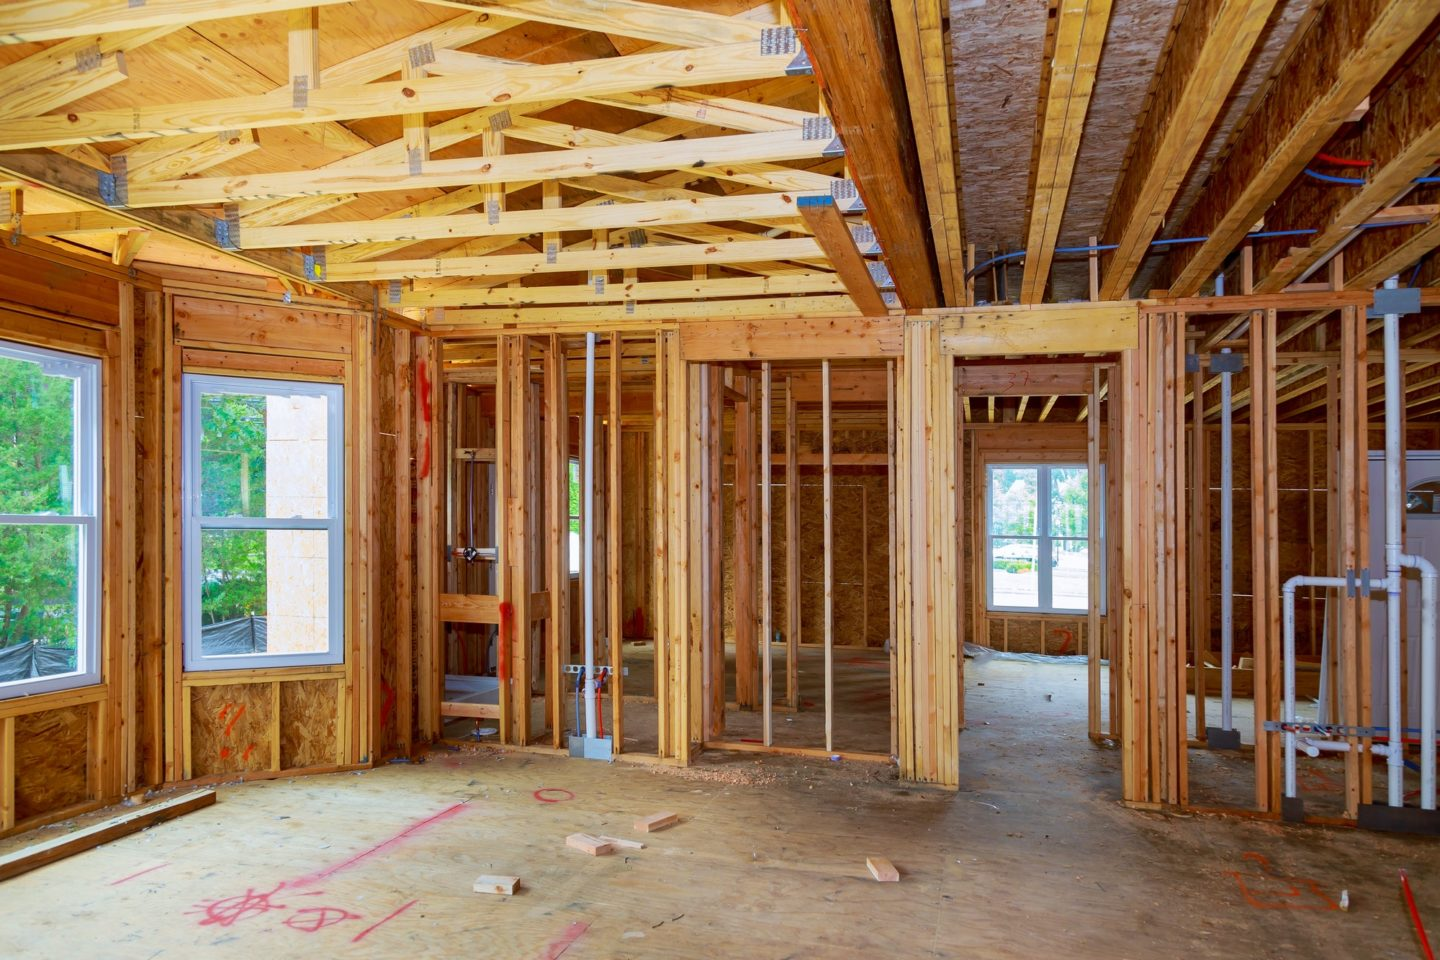 New Construction Wood Home Framing Abstract. New construction home framing